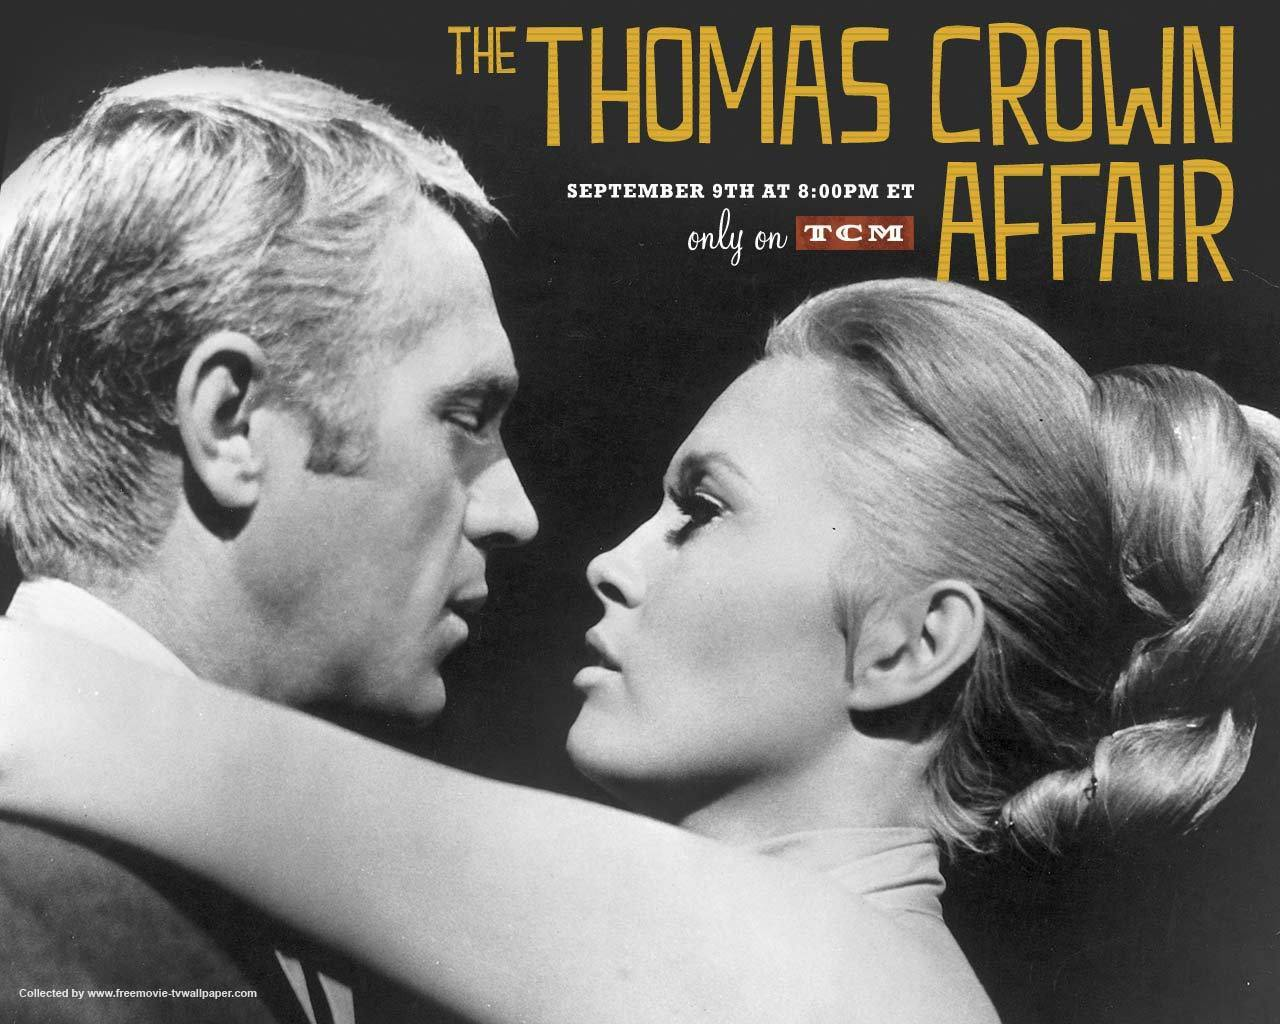 a paper on the movie the thomas crown affair Paper moon to catch a thief don  the thomas crown affair  my teenaged sister expressed interest in the movie the thomas crown affair because she thought steve.